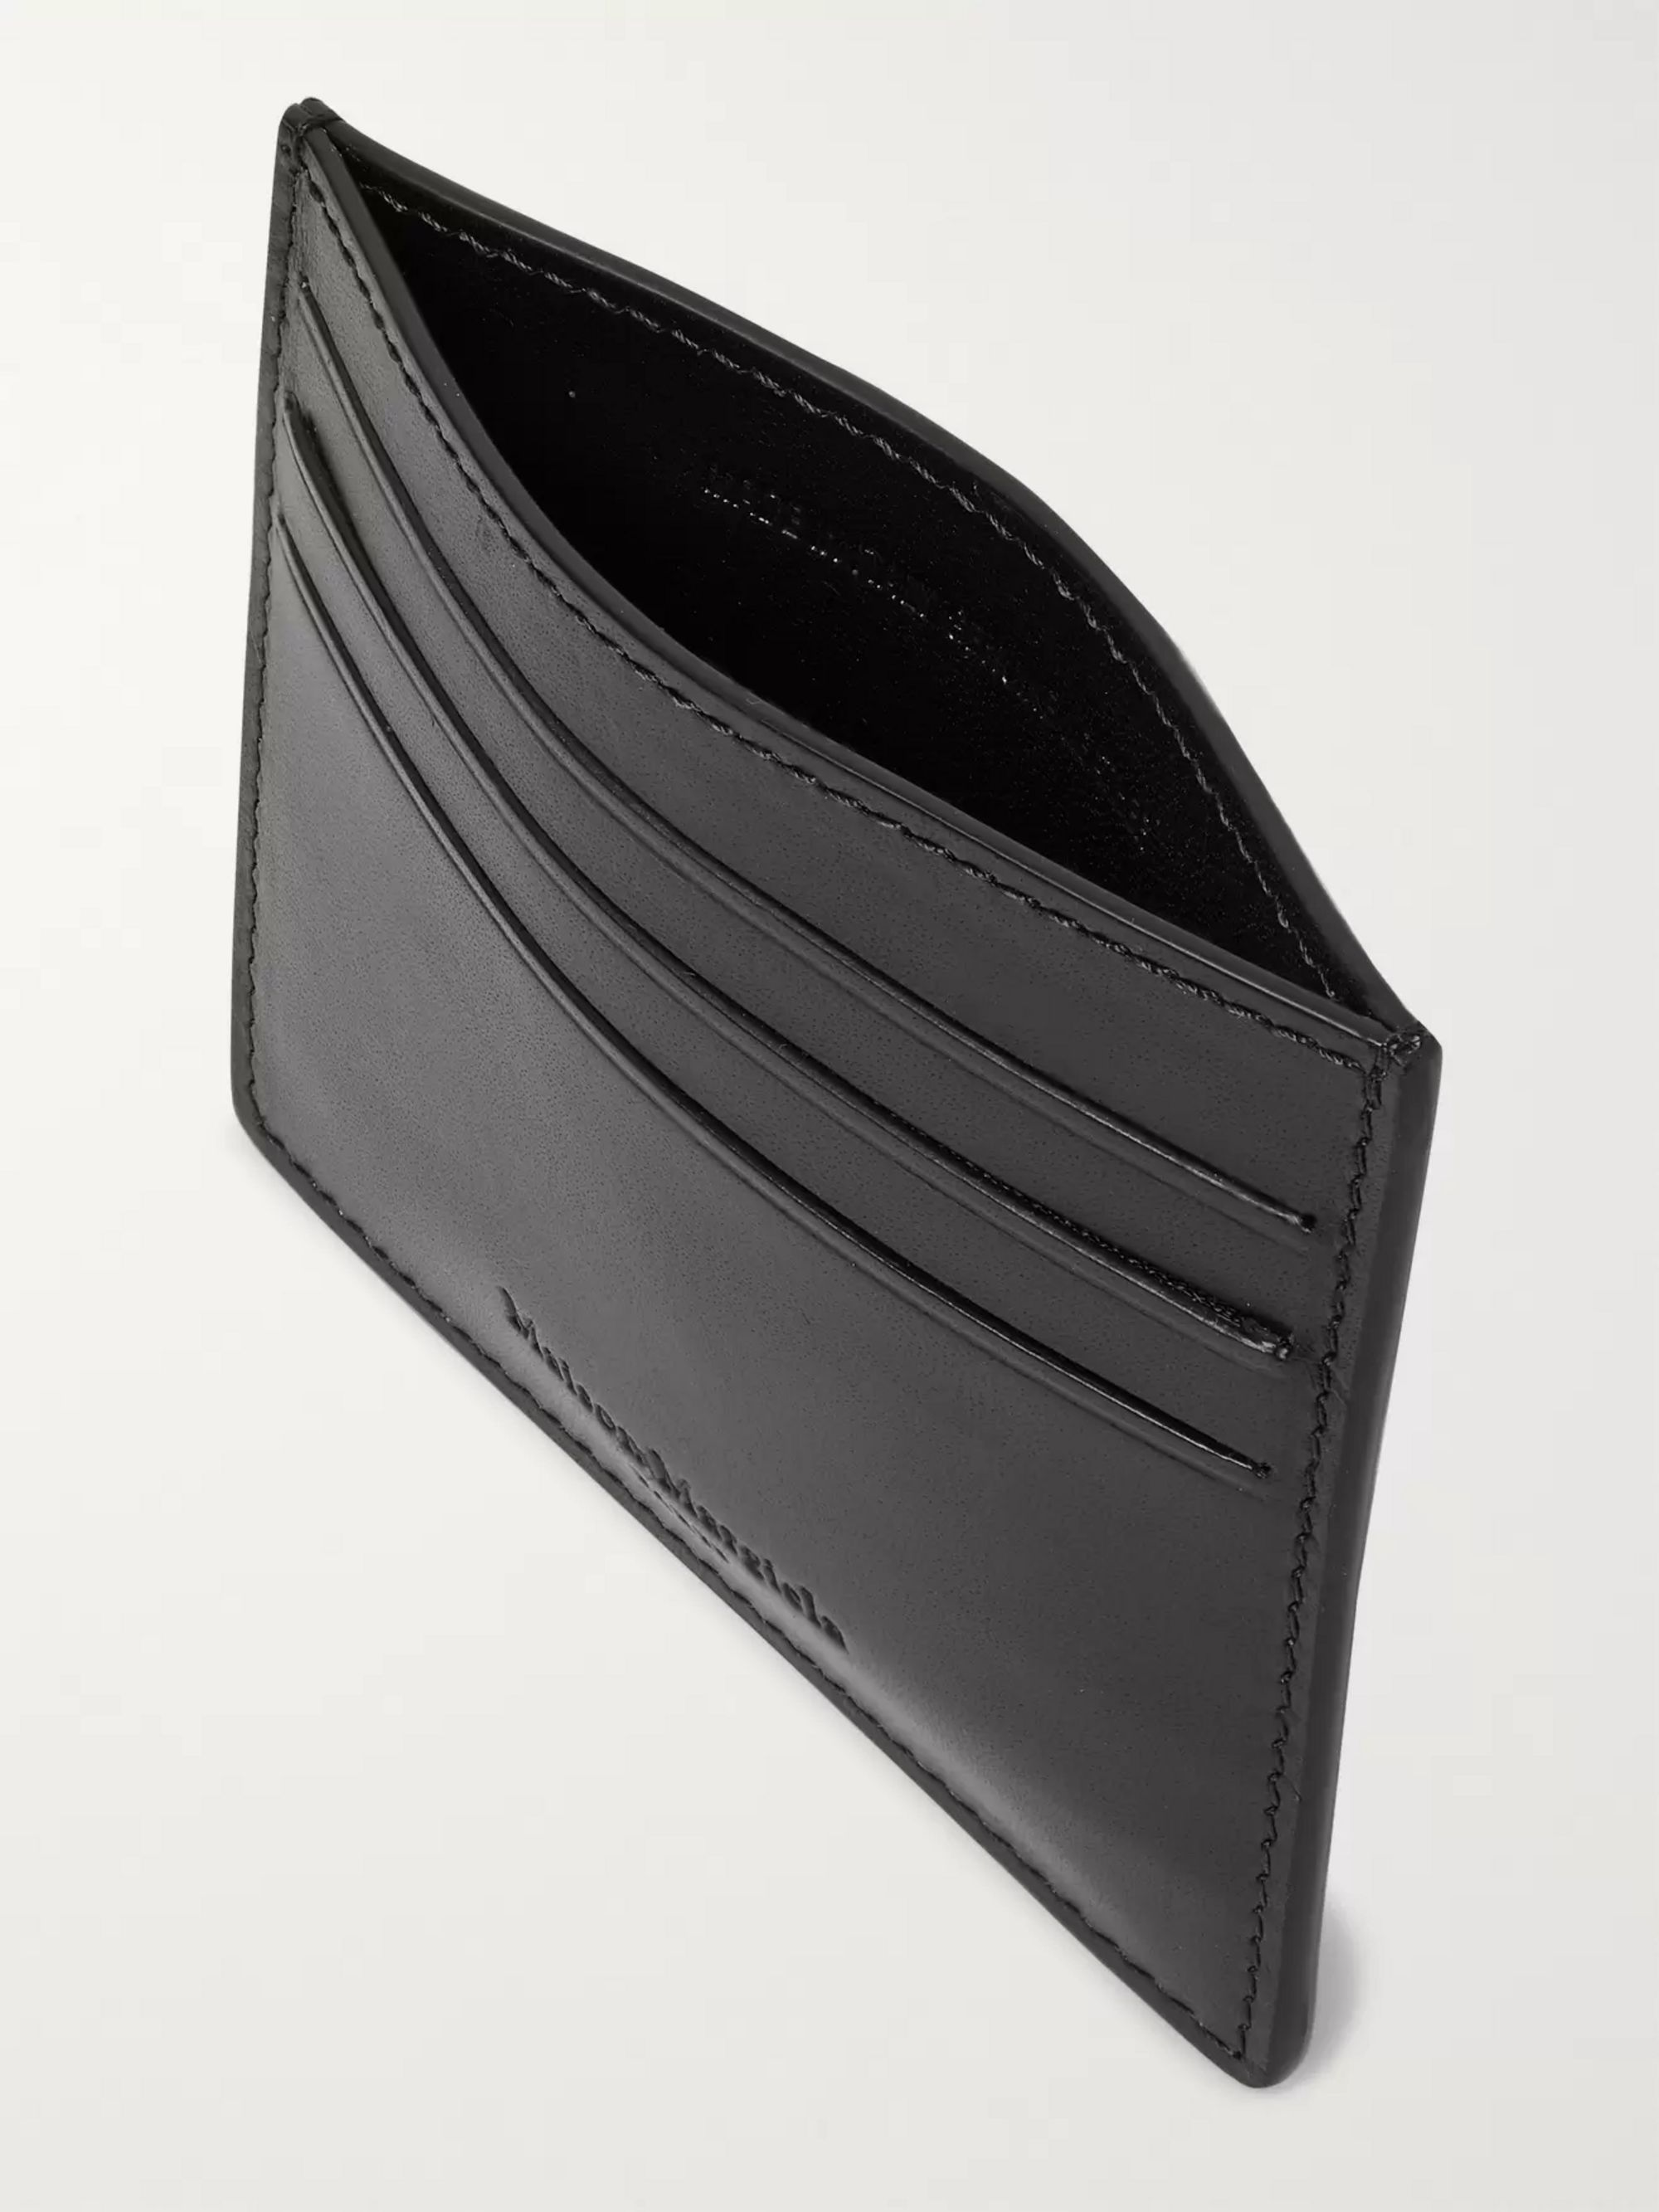 Maison Margiela Two-Tone Leather Cardholder